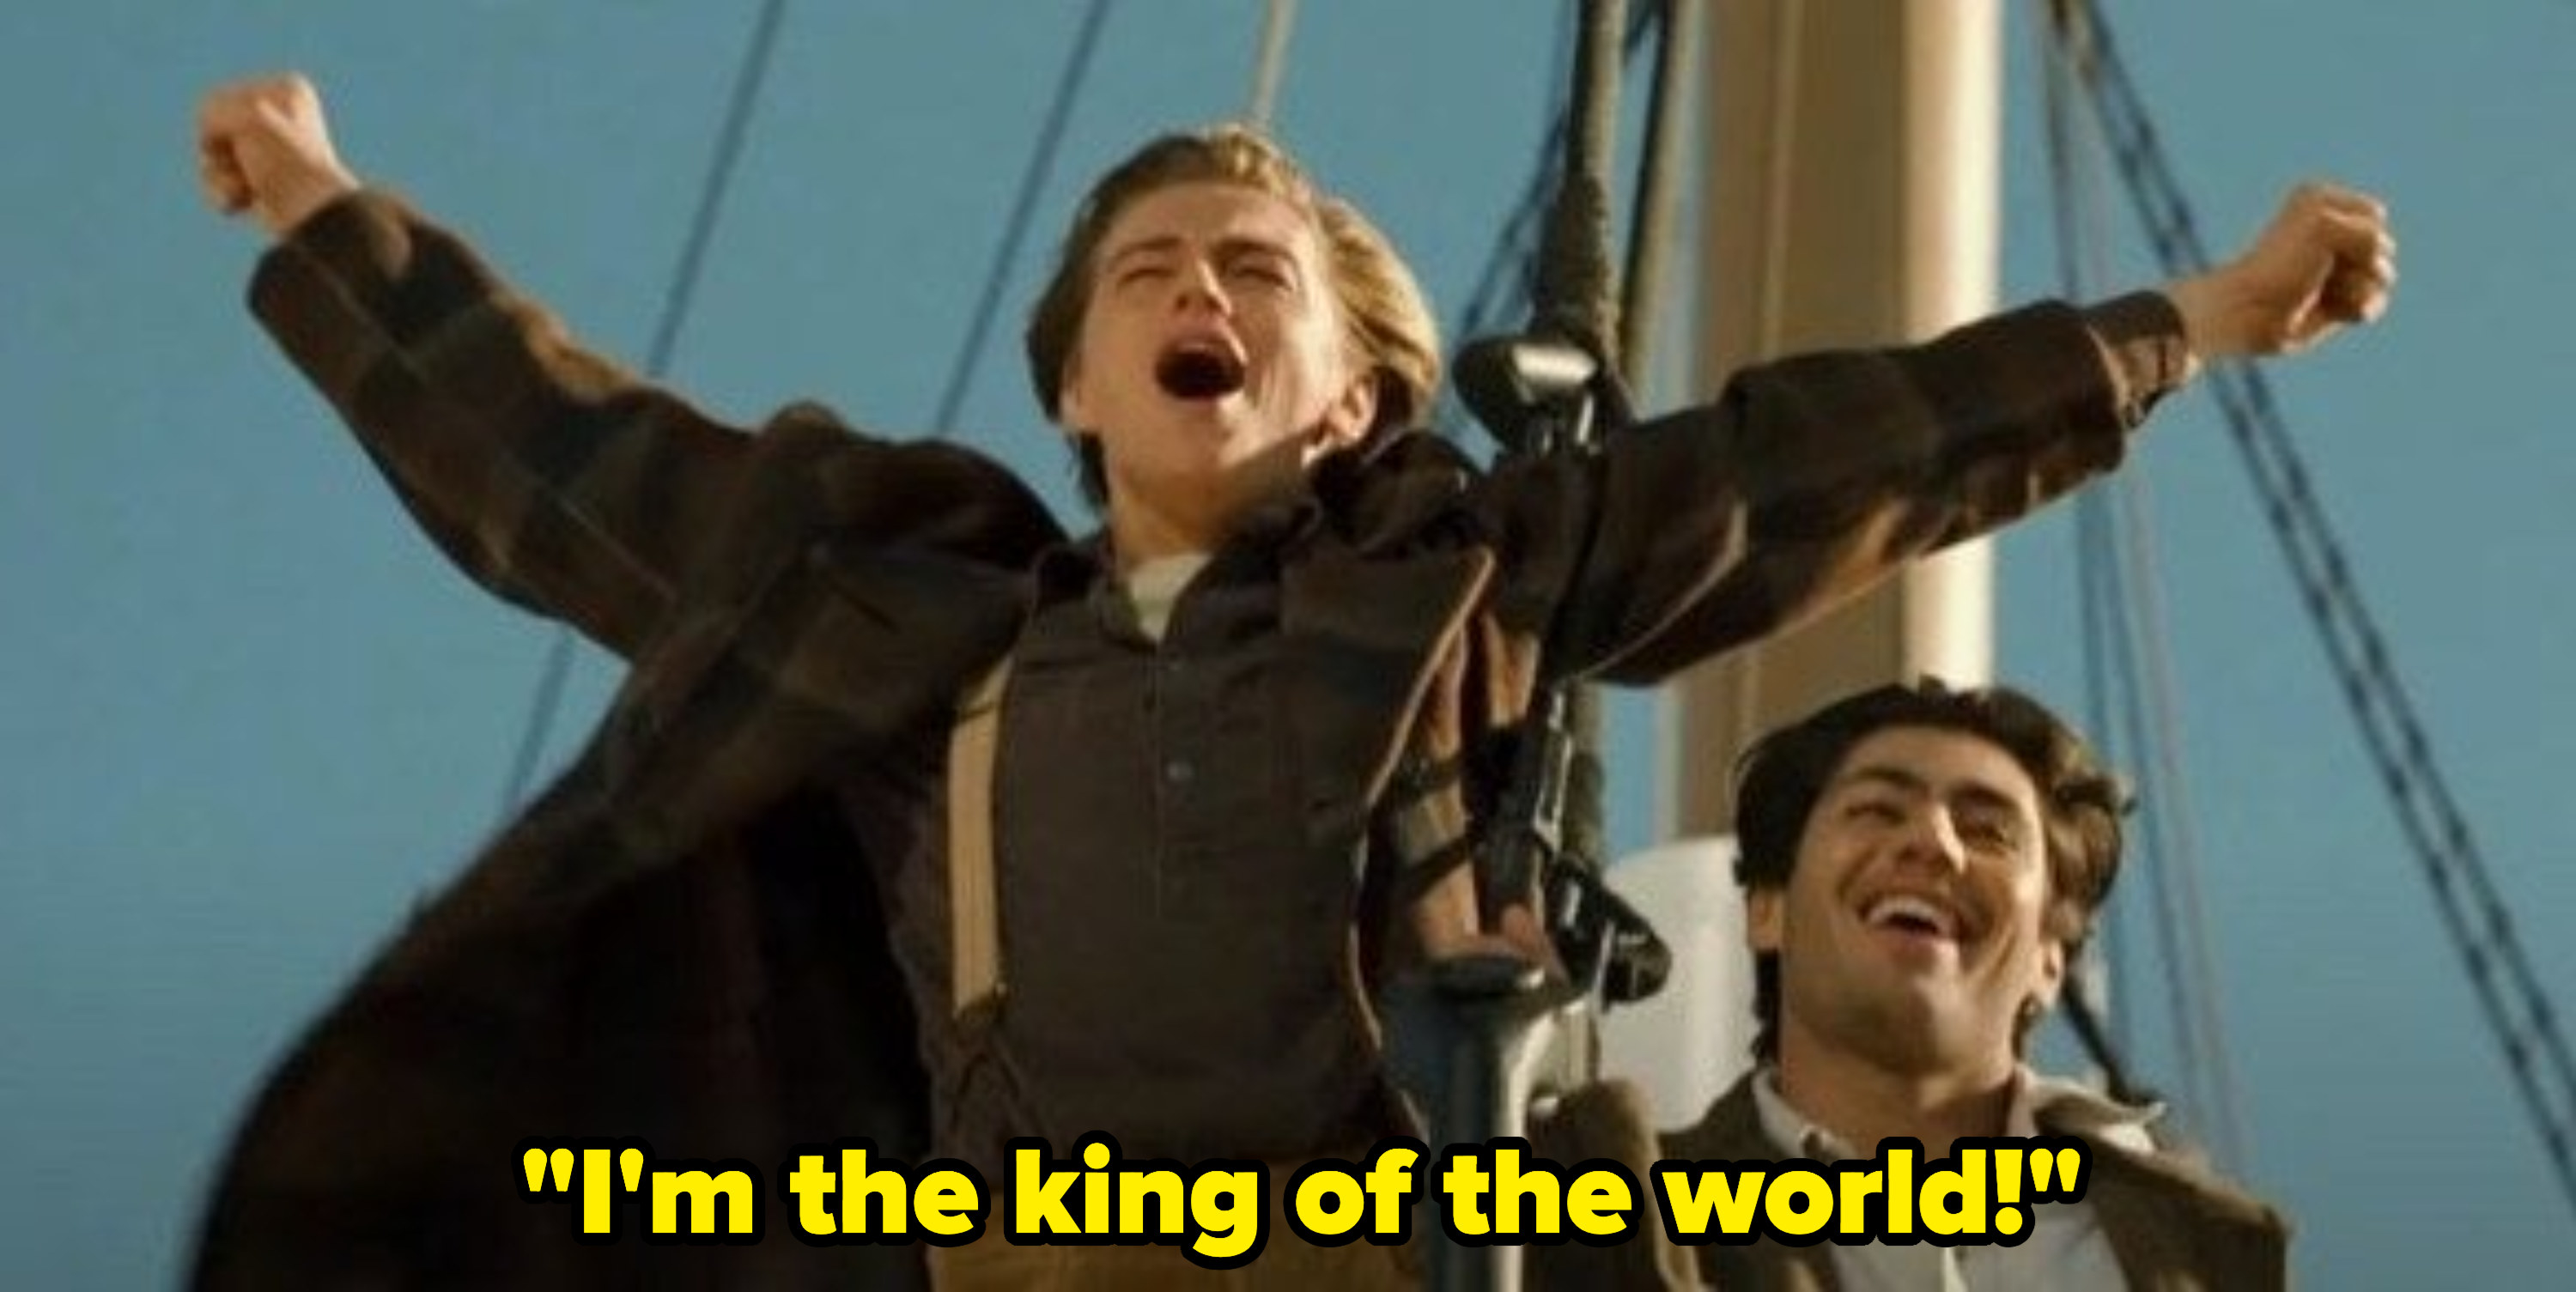 """Jack screaming: """"I'm the king of the world!"""""""